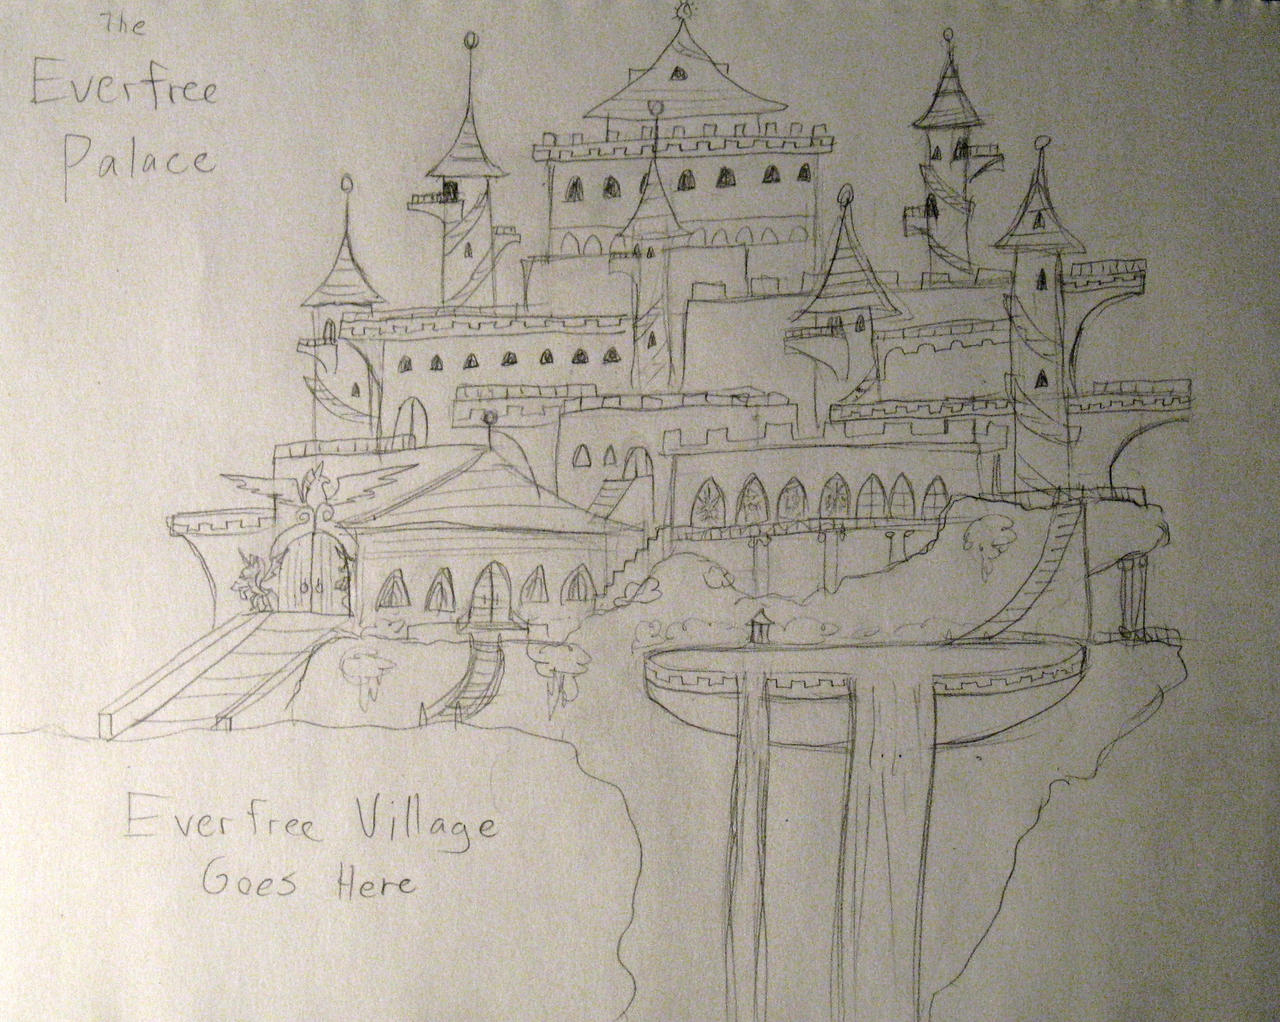 Everfree Palace conceptual sketch by AleximusPrime